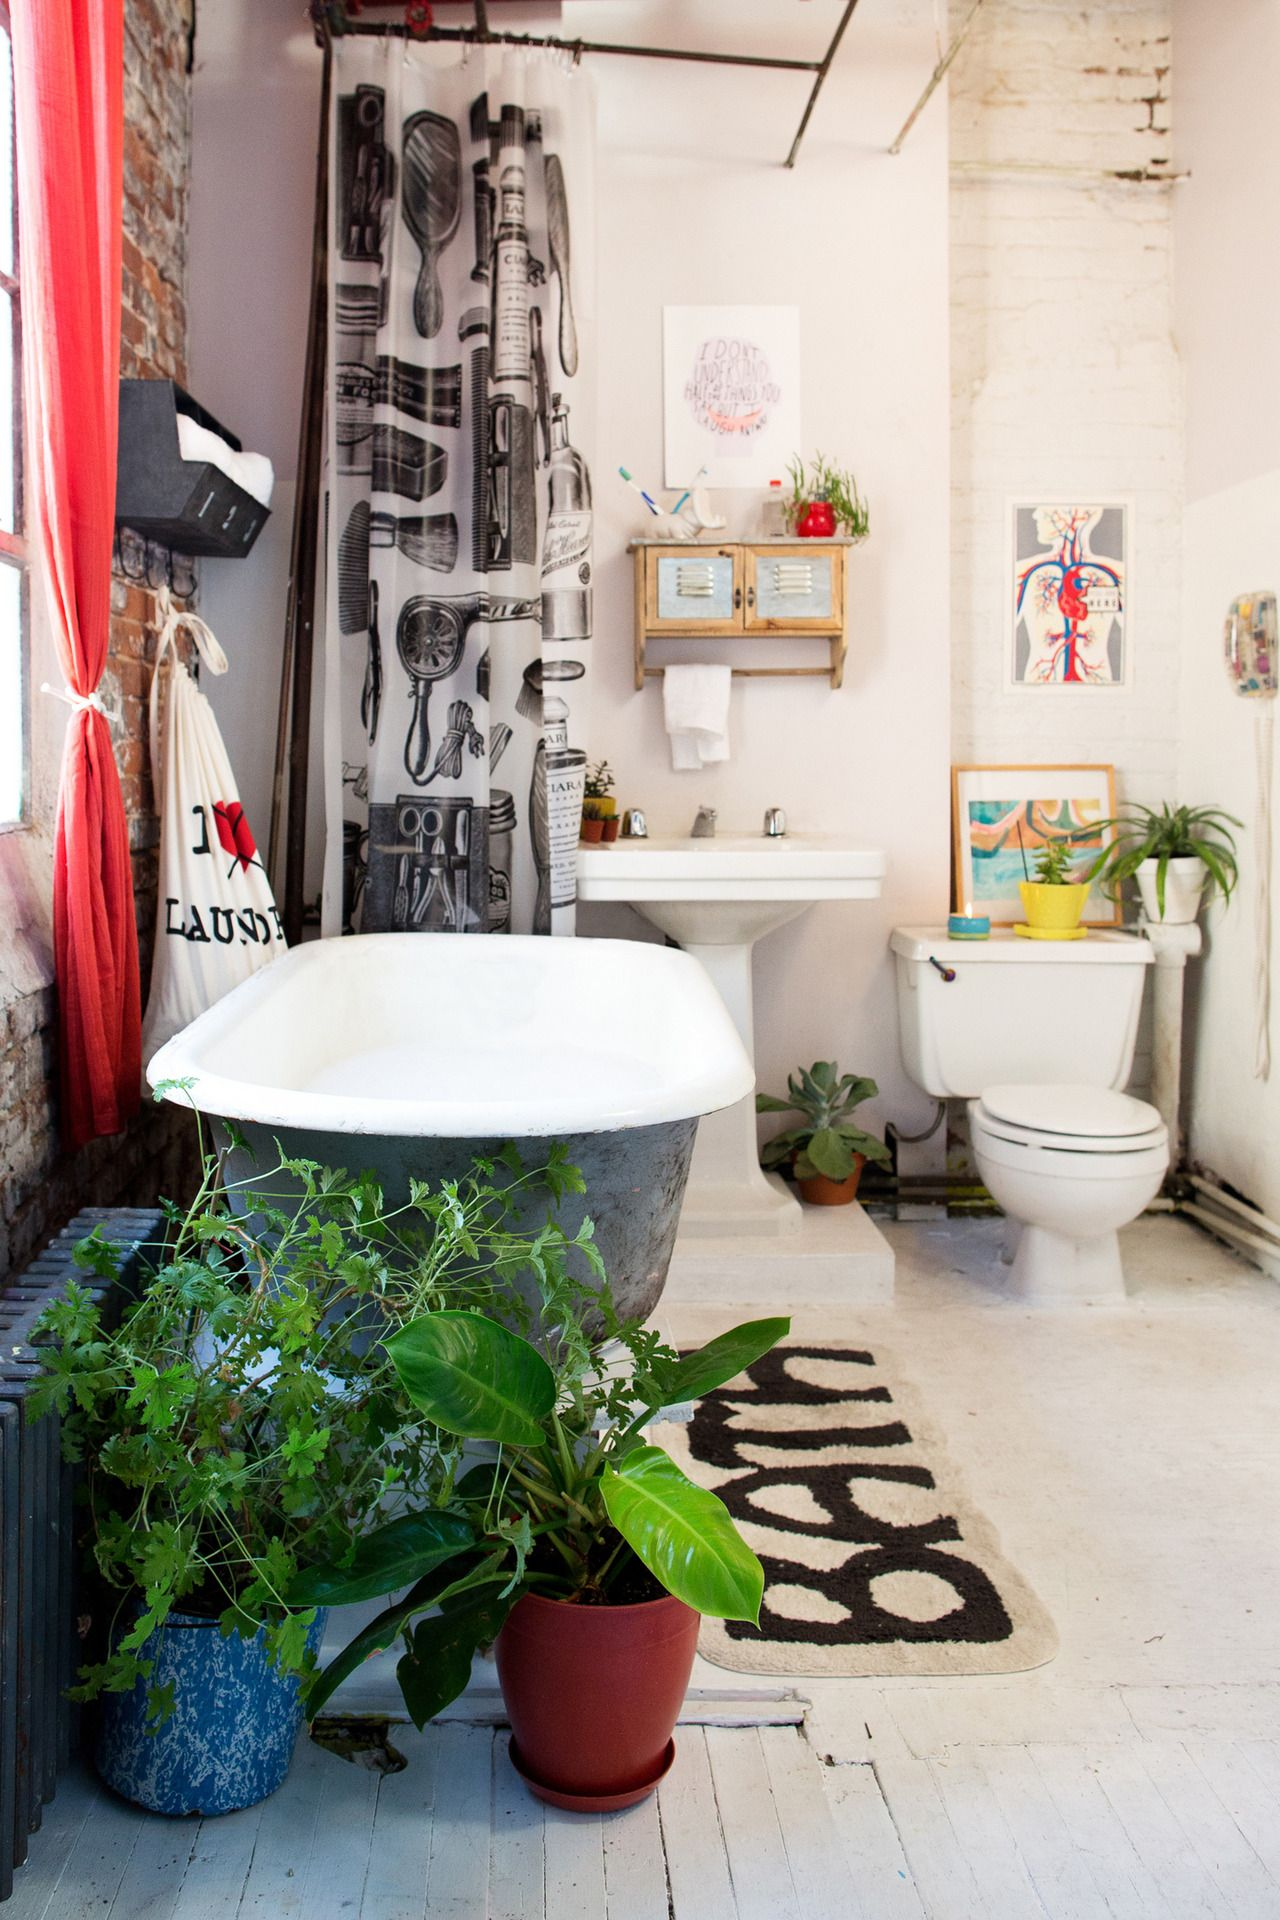 How To Make A White Apartment Bathroom Yours Mixed Patterns and